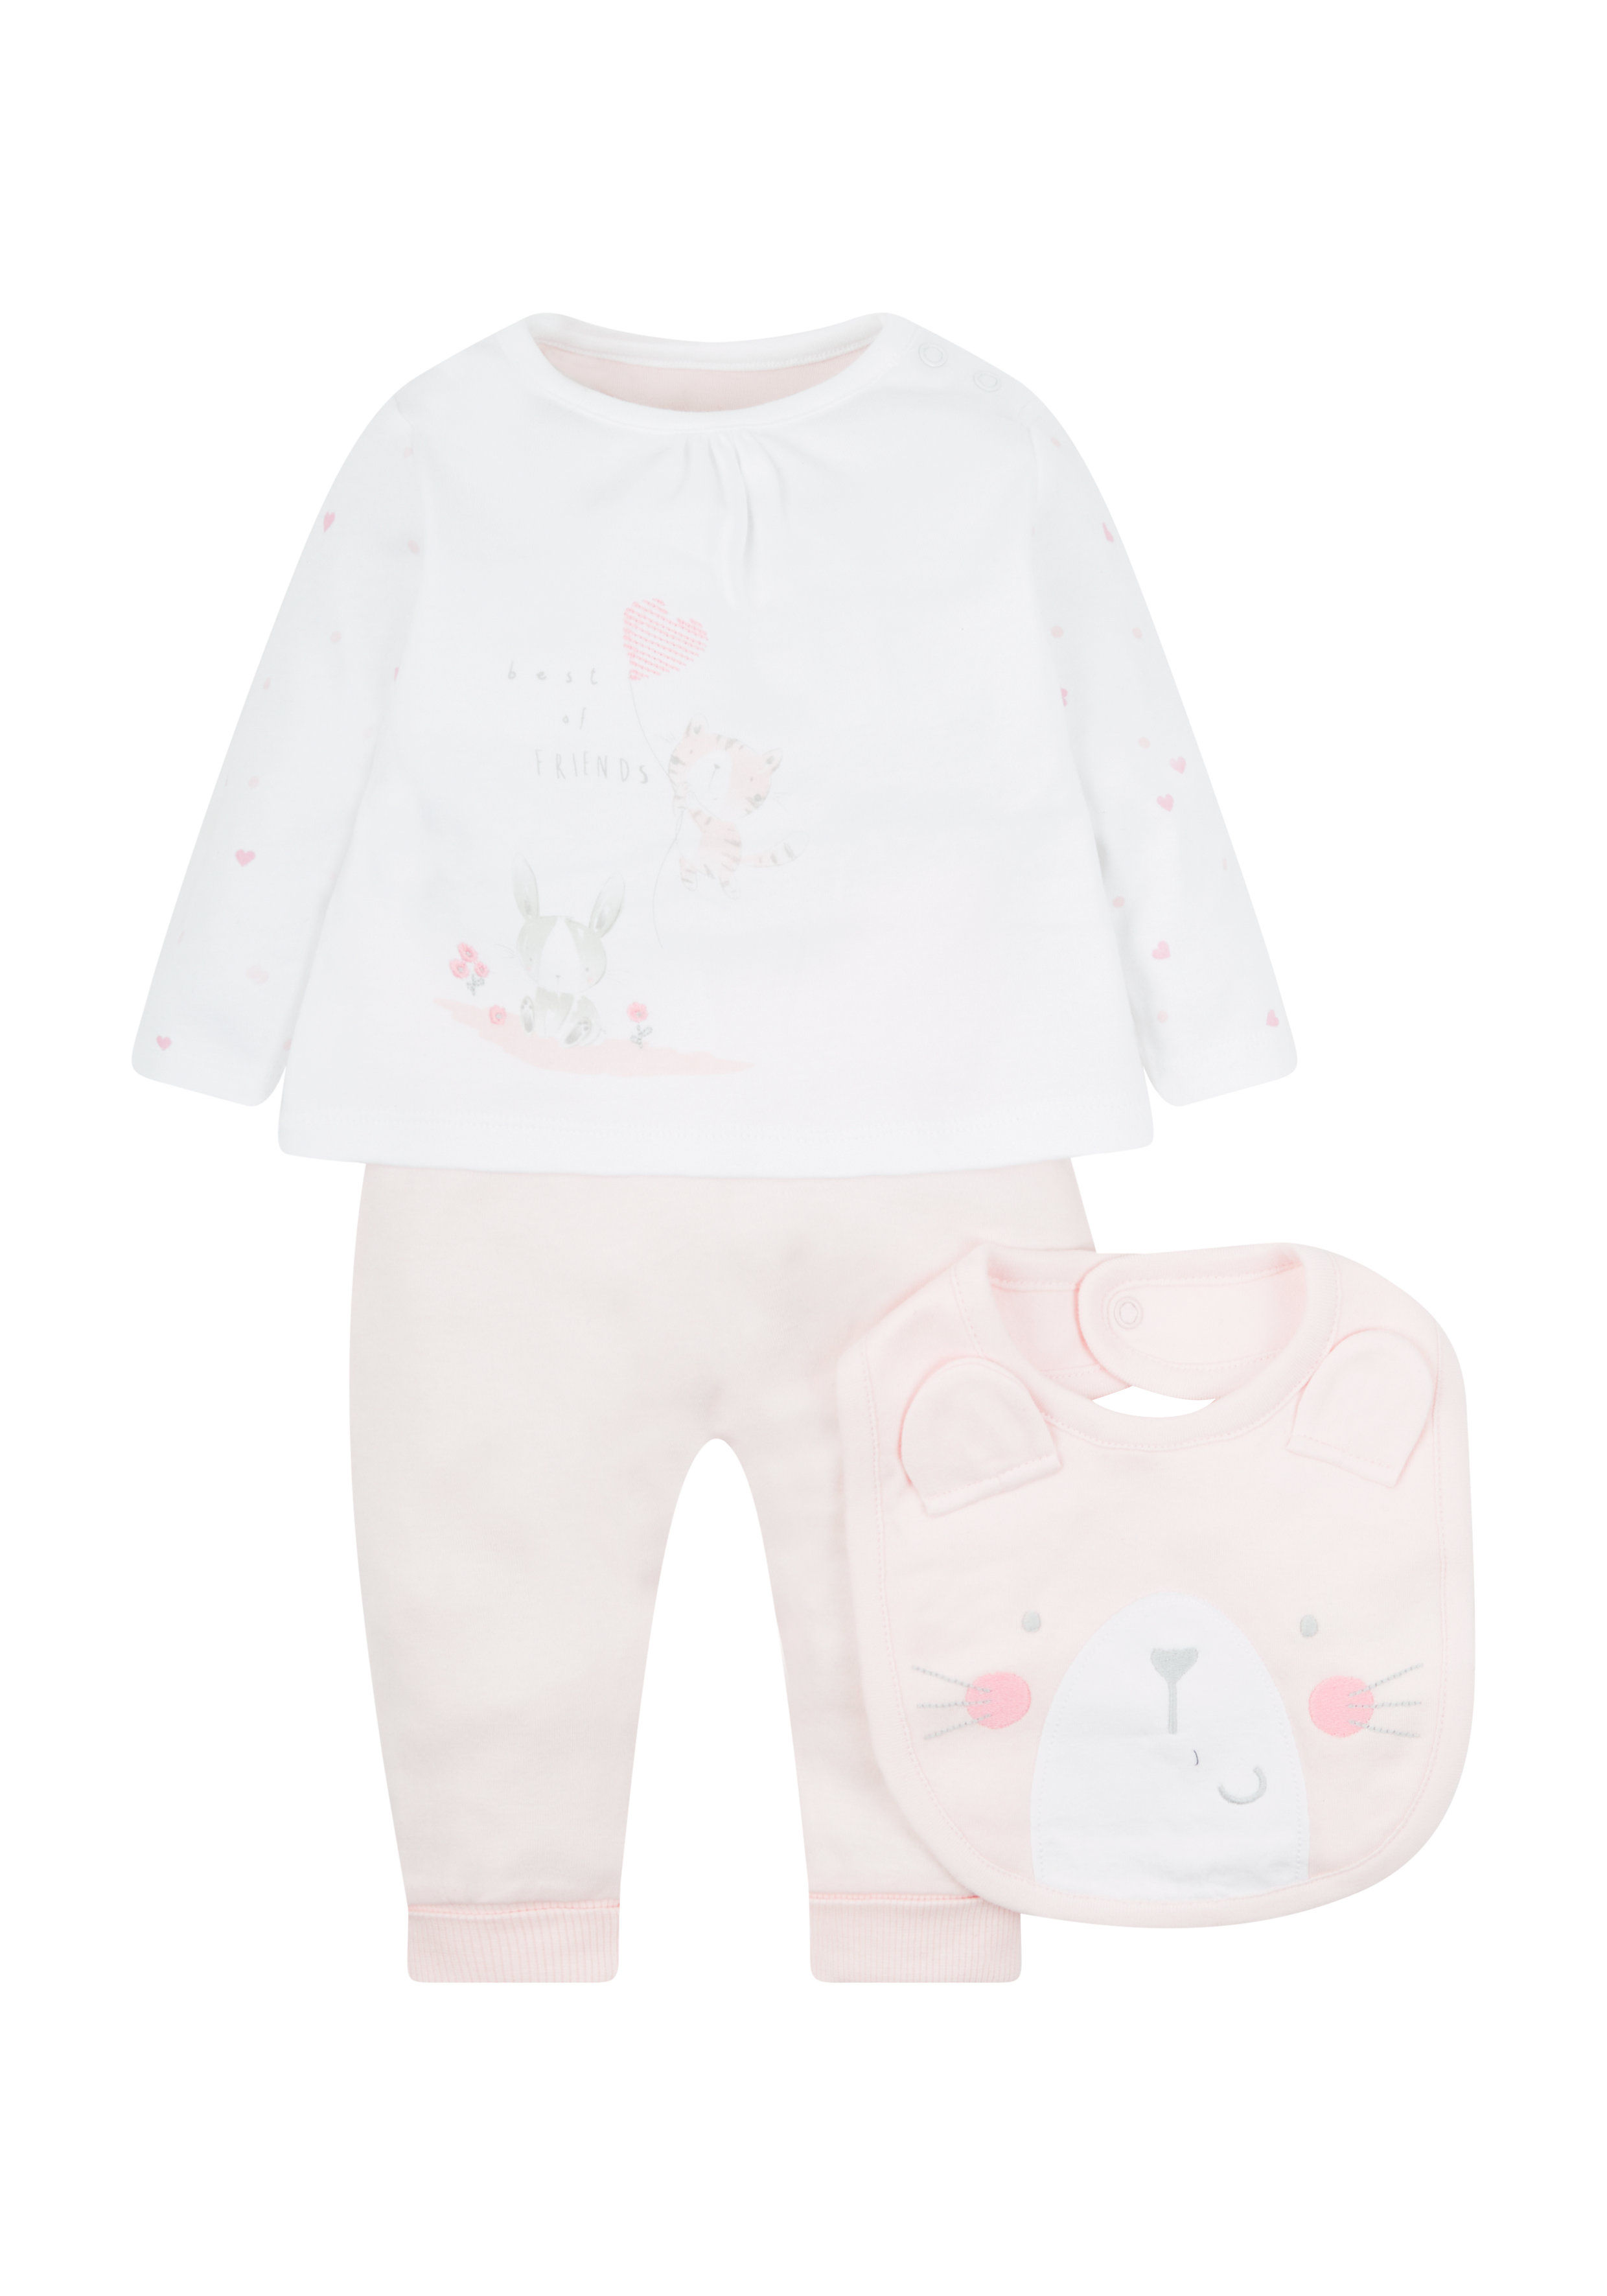 Mothercare | My First Pink Leggings Top And Bib Set